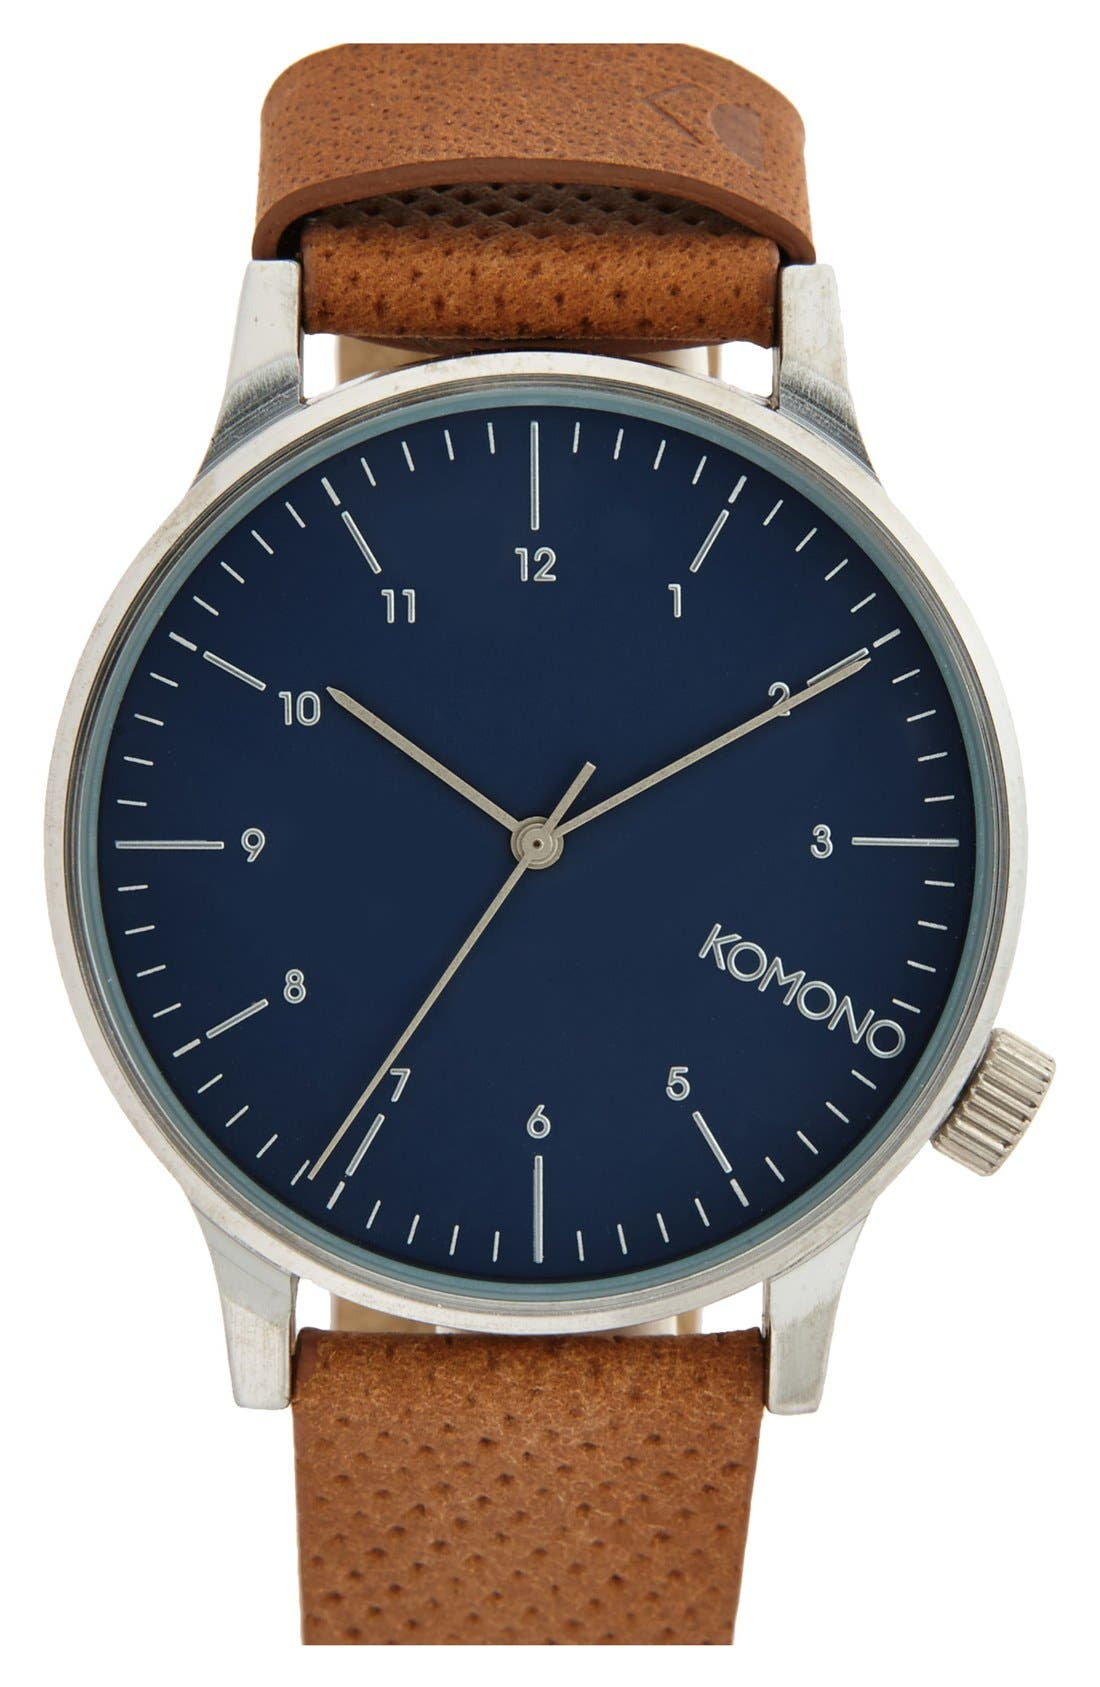 KOMONO 'Winston' Round Dial Leather Strap Watch, 41mm